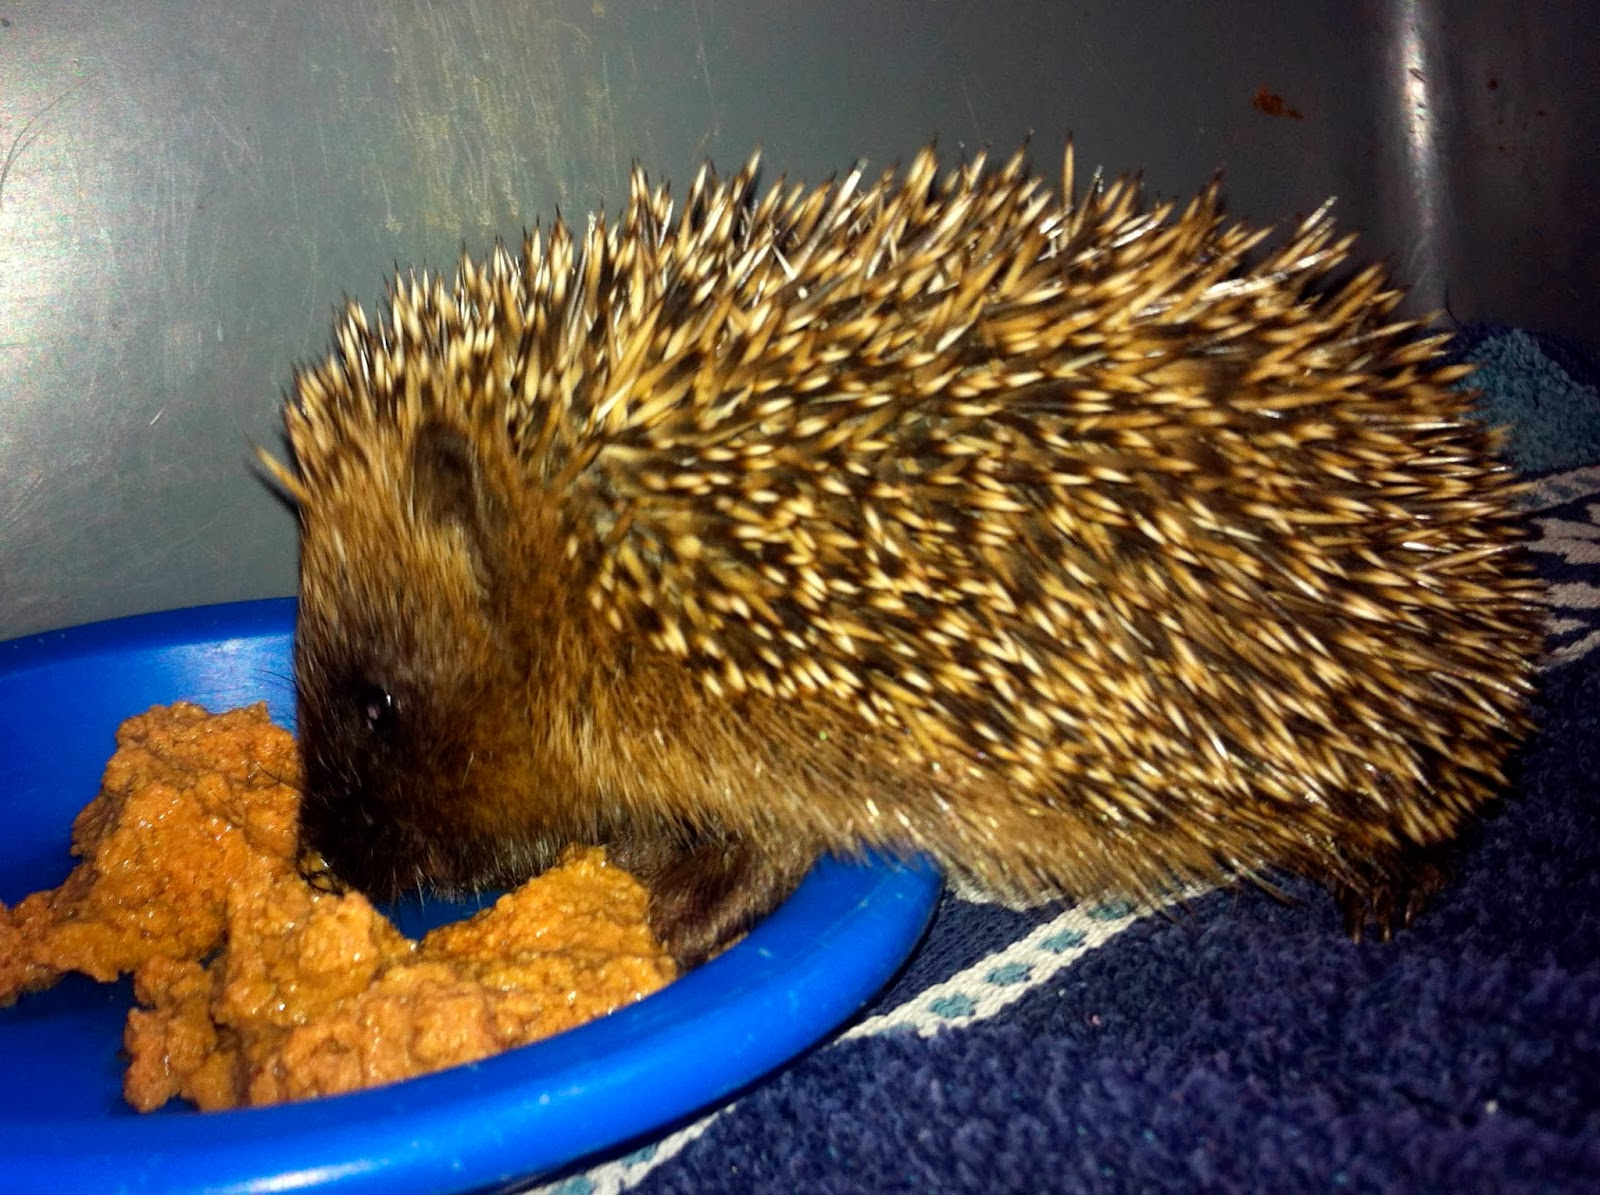 Rescued hedgehog eating